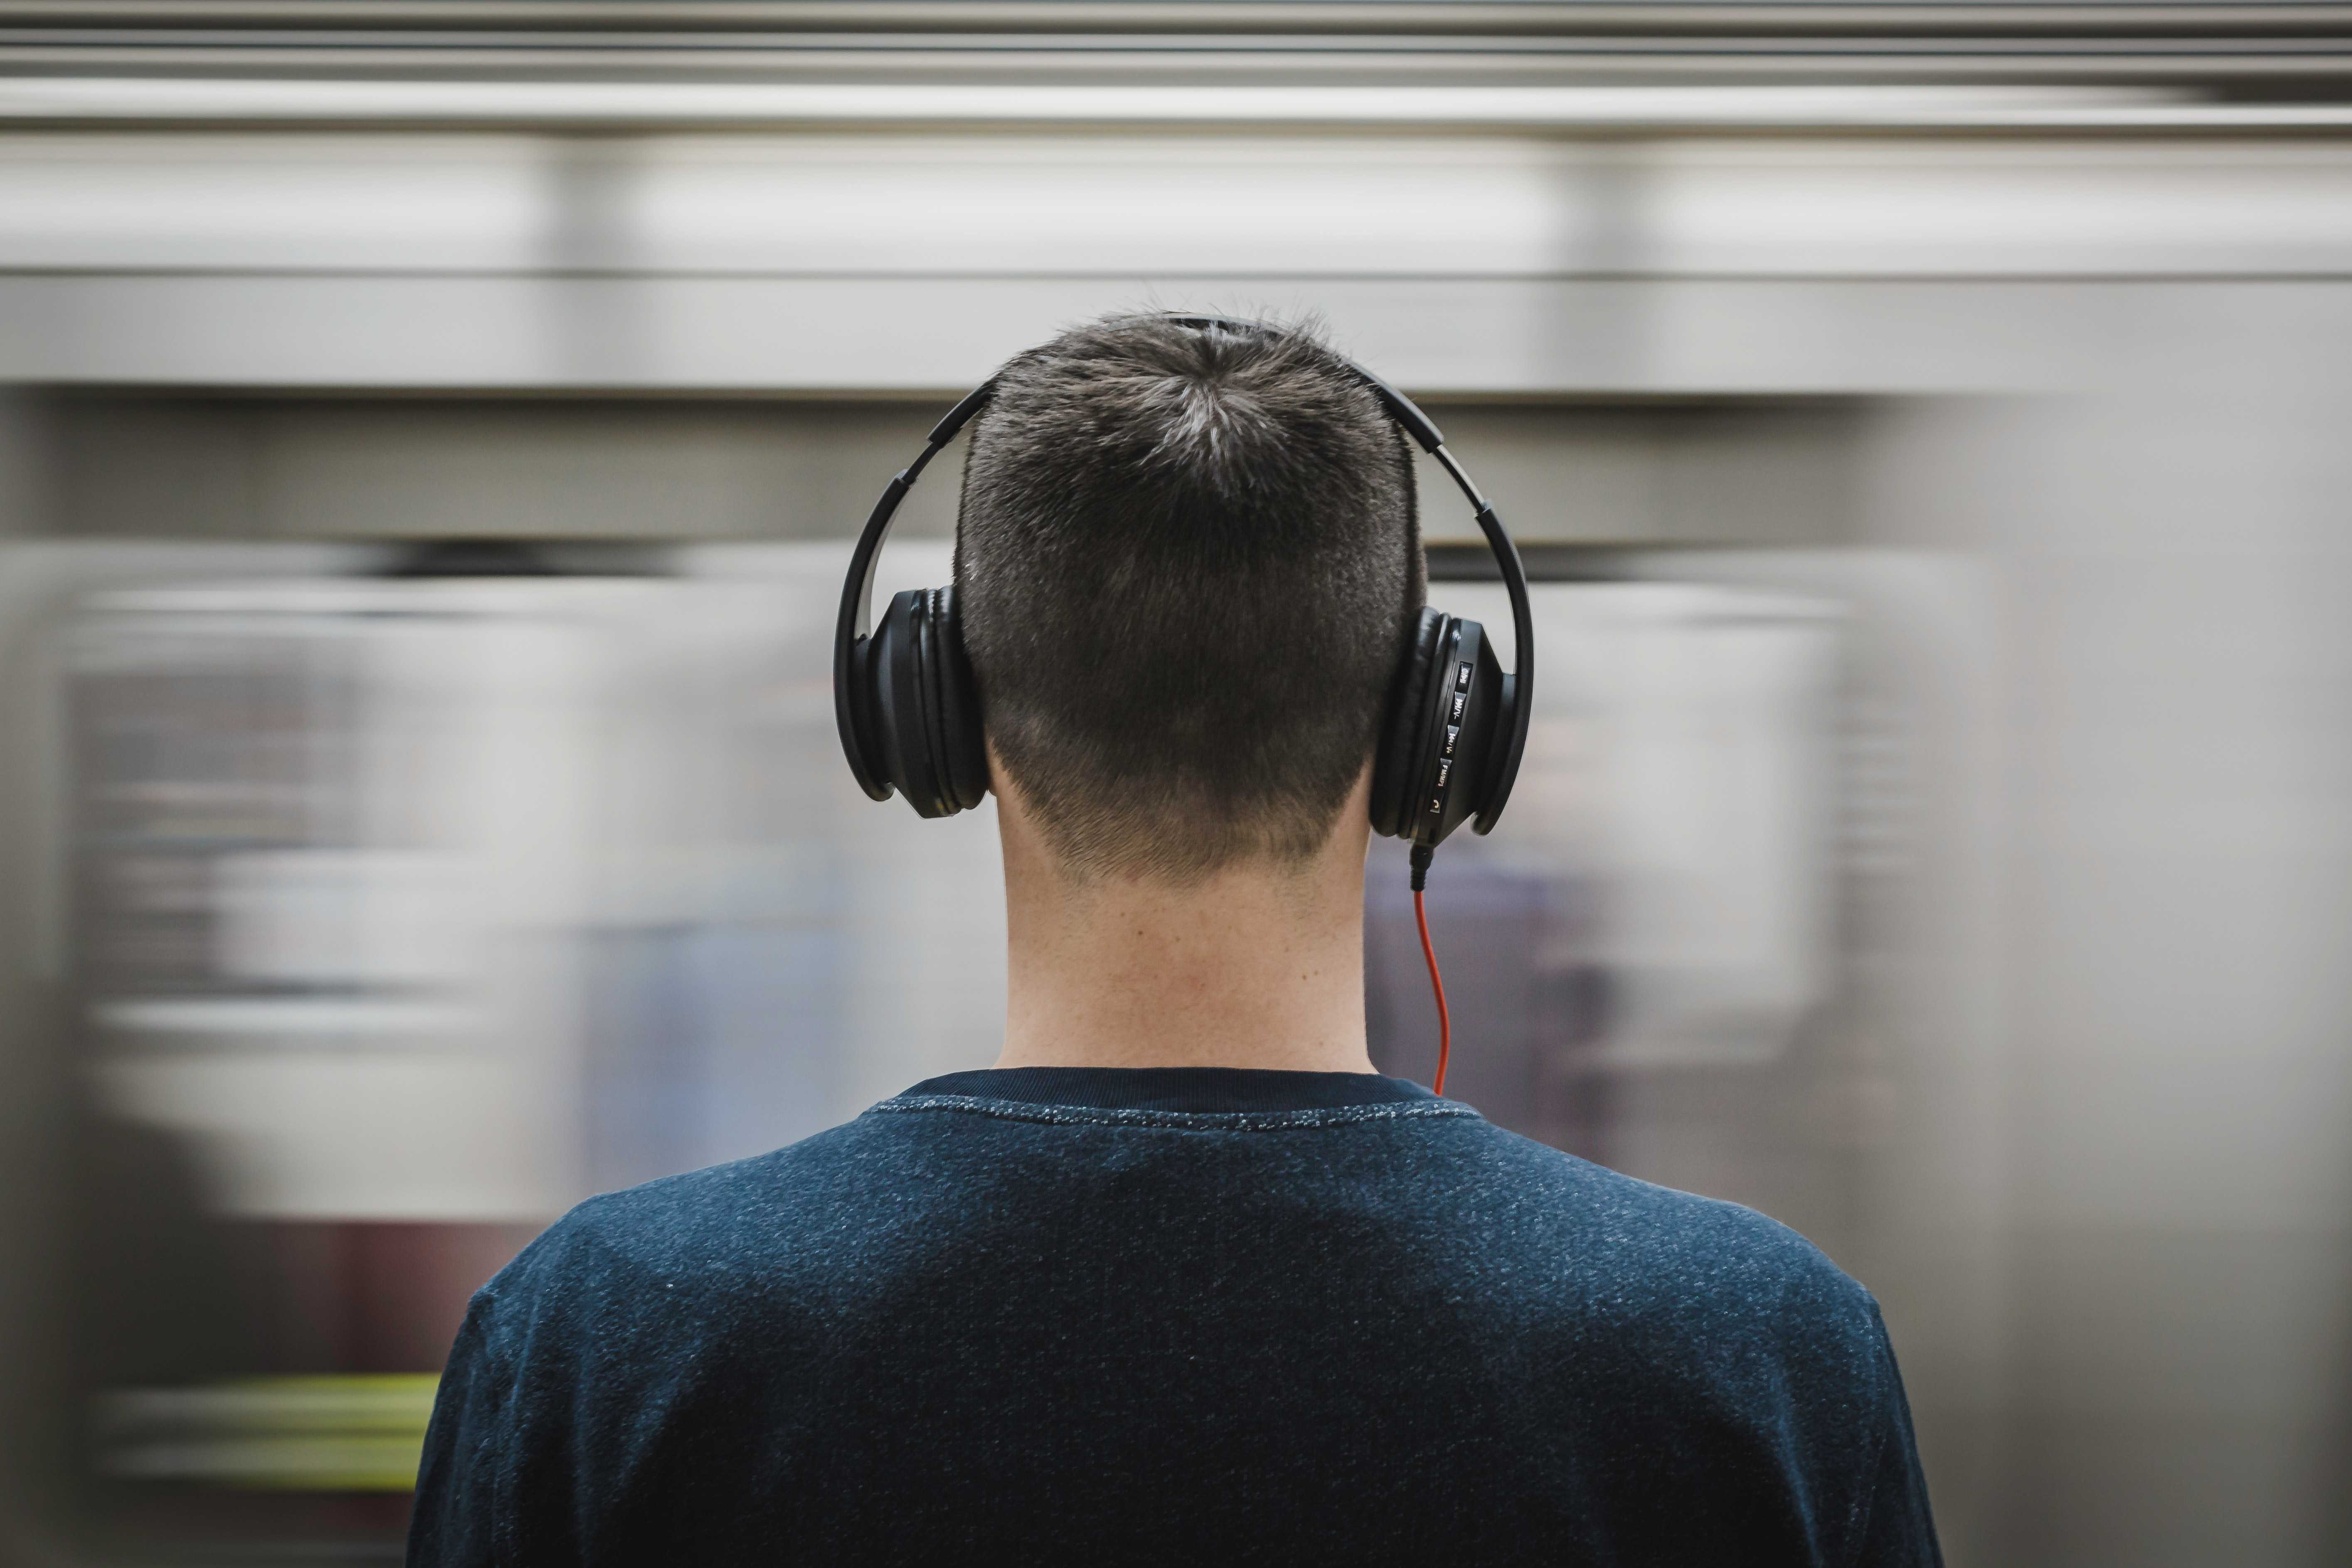 Man with noise cancelling headphones in metro station